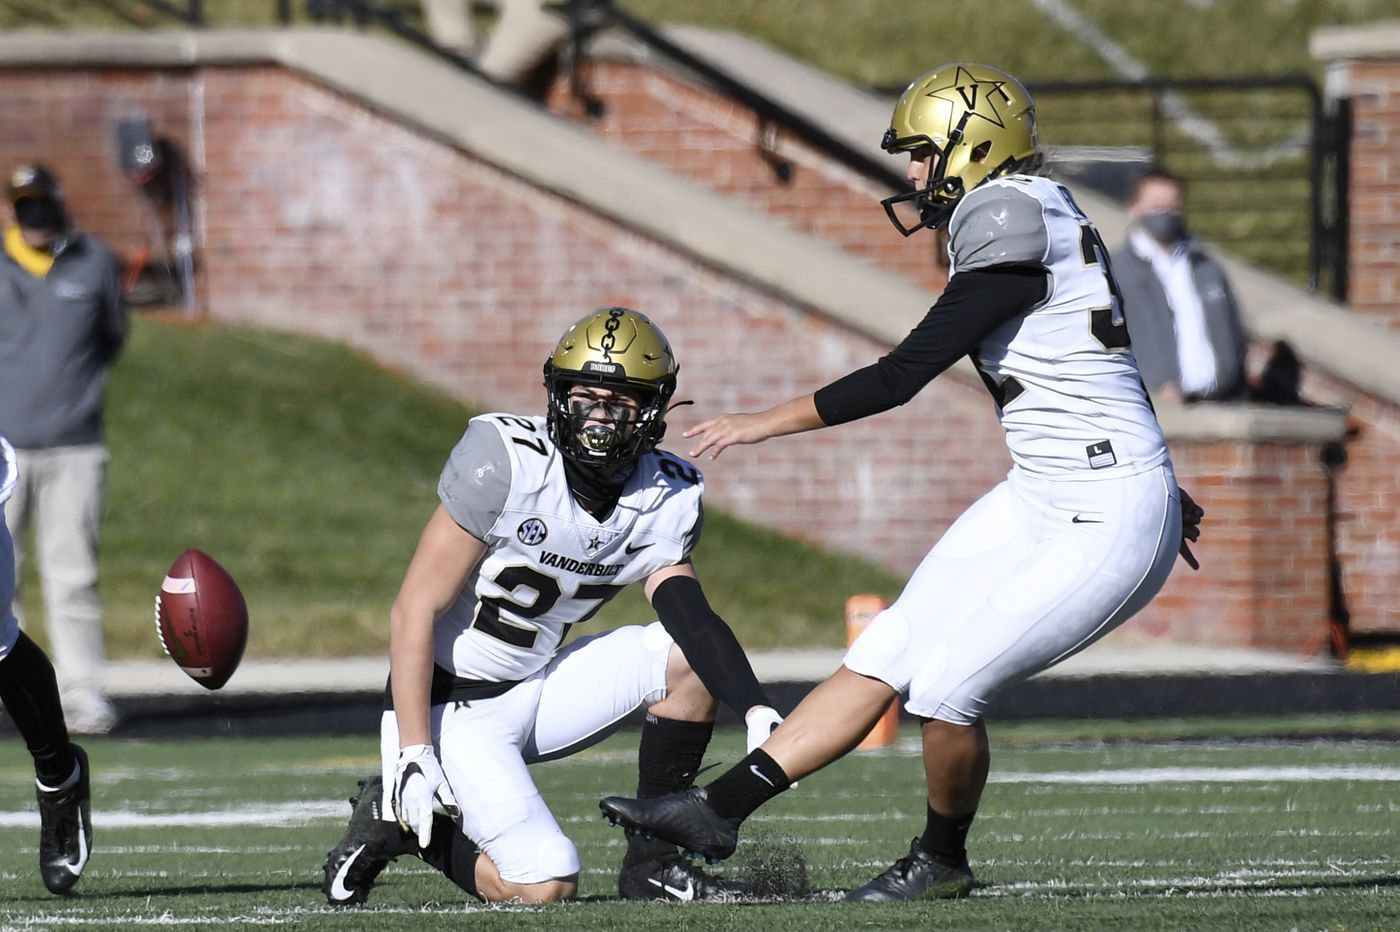 Vanderbilt K Sarah Fuller becomes first woman to play for Power 5 college football team